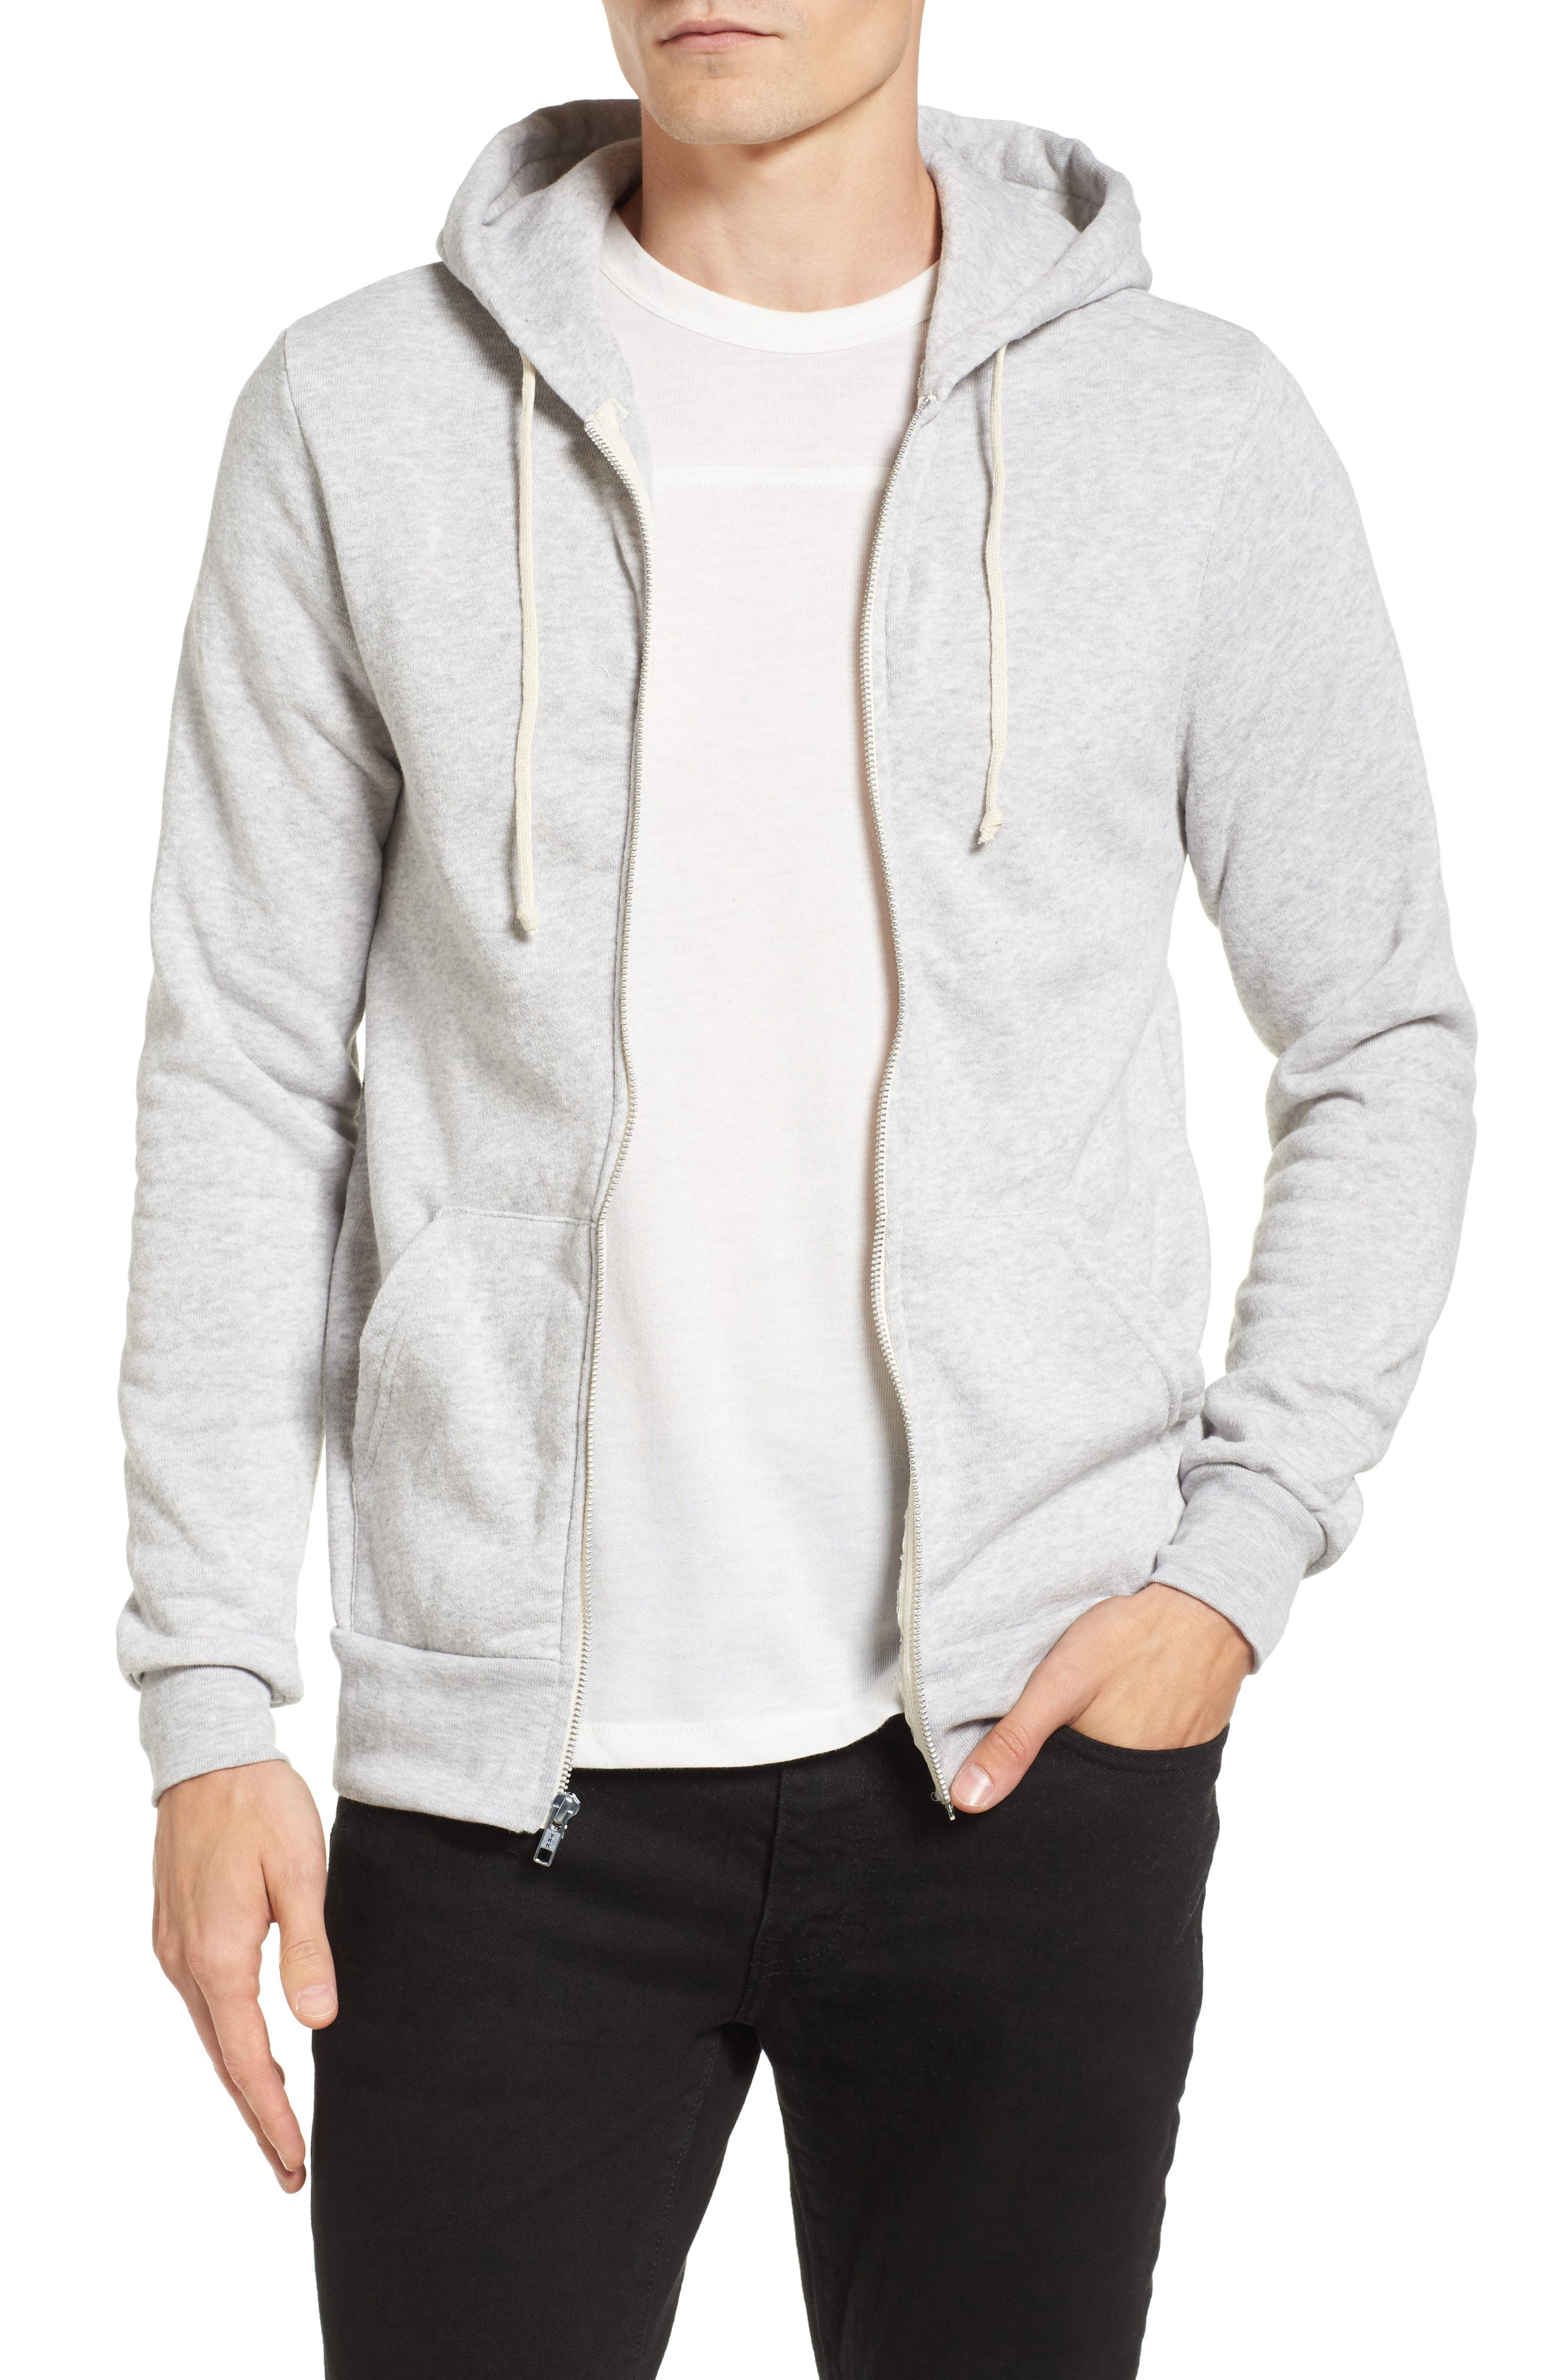 'Rocky' Trim Fit Hoodie,                             Main thumbnail 1, color,                             250